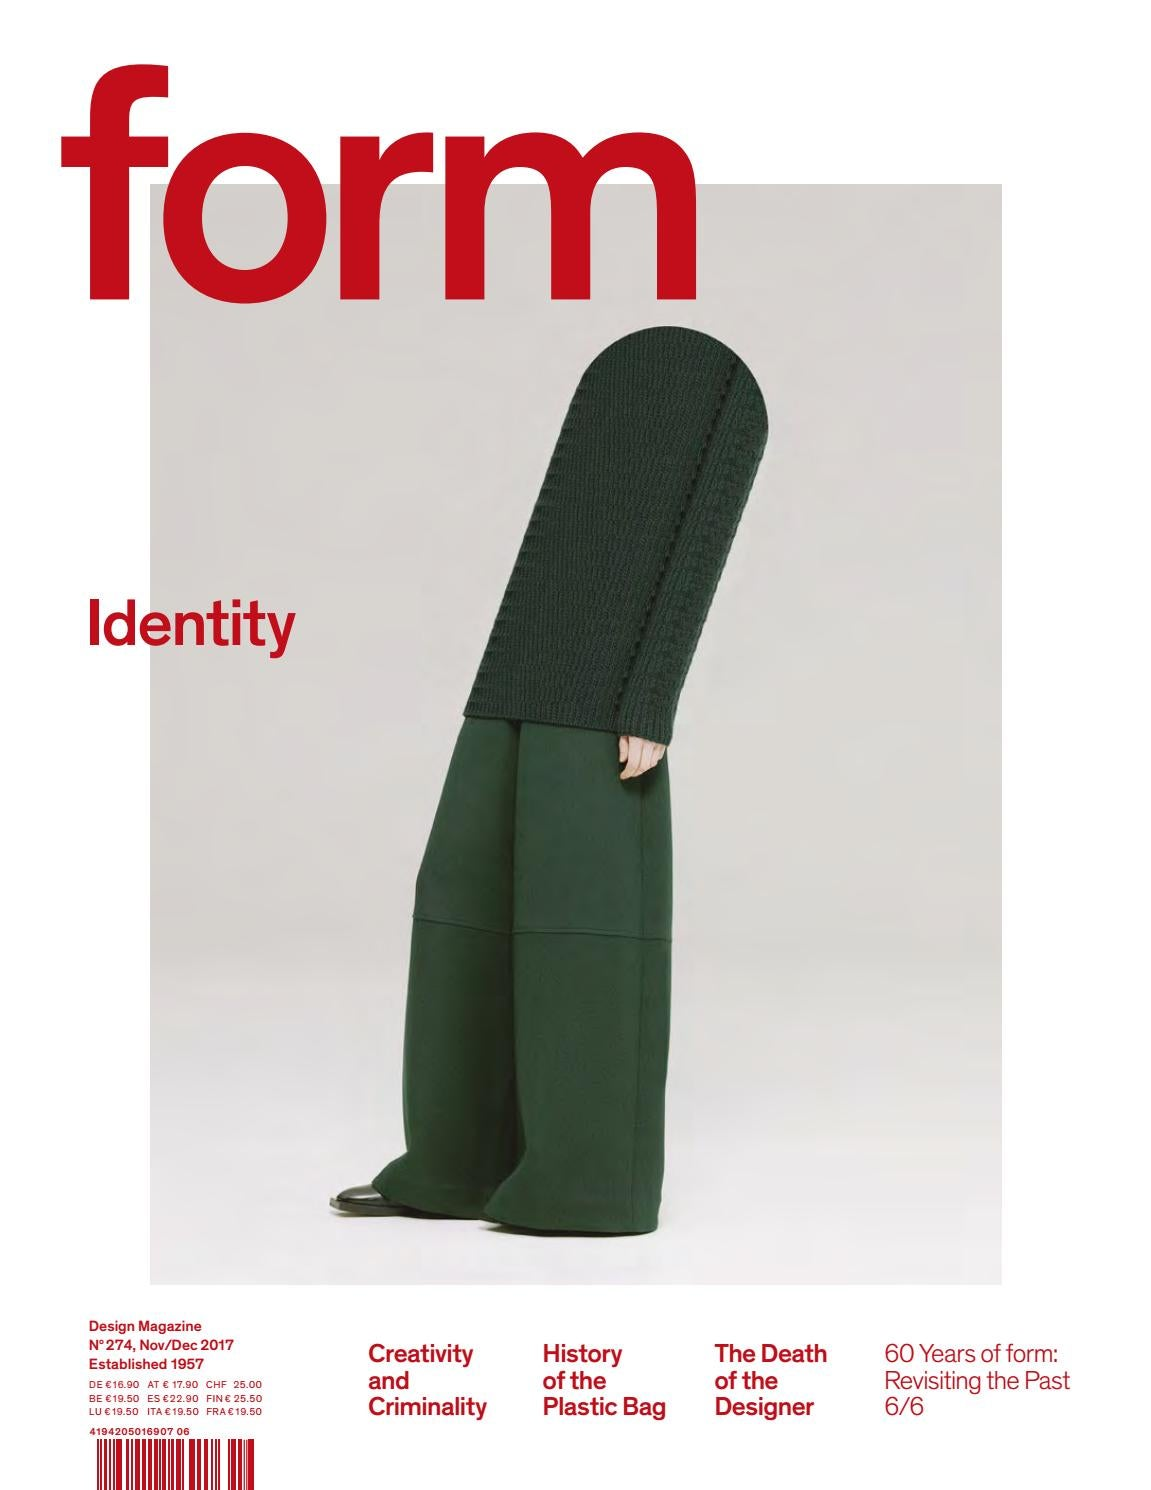 Form 274 Identity By Verlag Gmbh Co Kg Issuu Fp Multi Hijab Style Ideas 3 30 Gaya